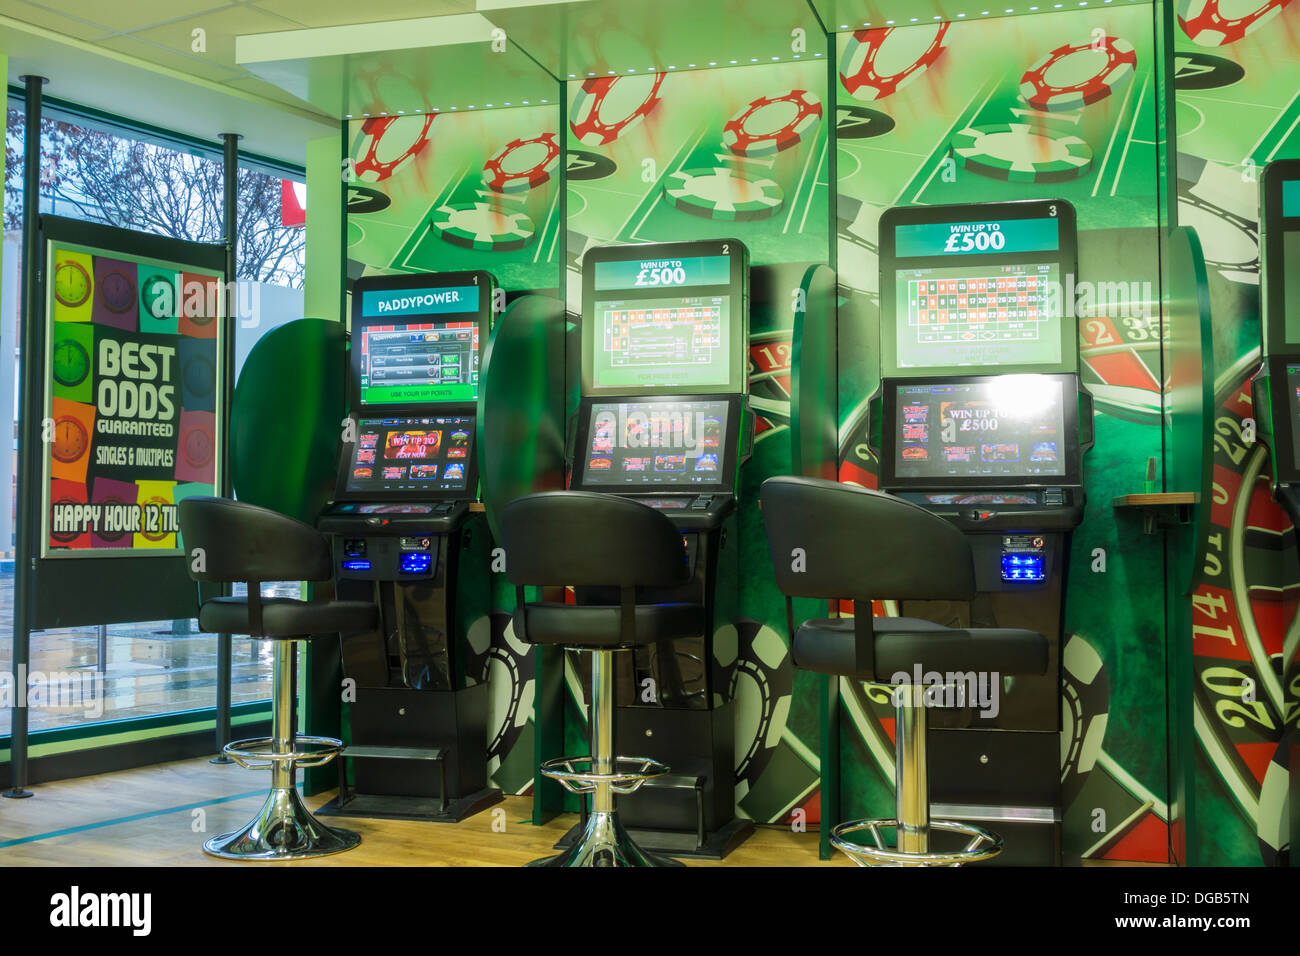 Gaming machines in paddy power betting office england uk stock image